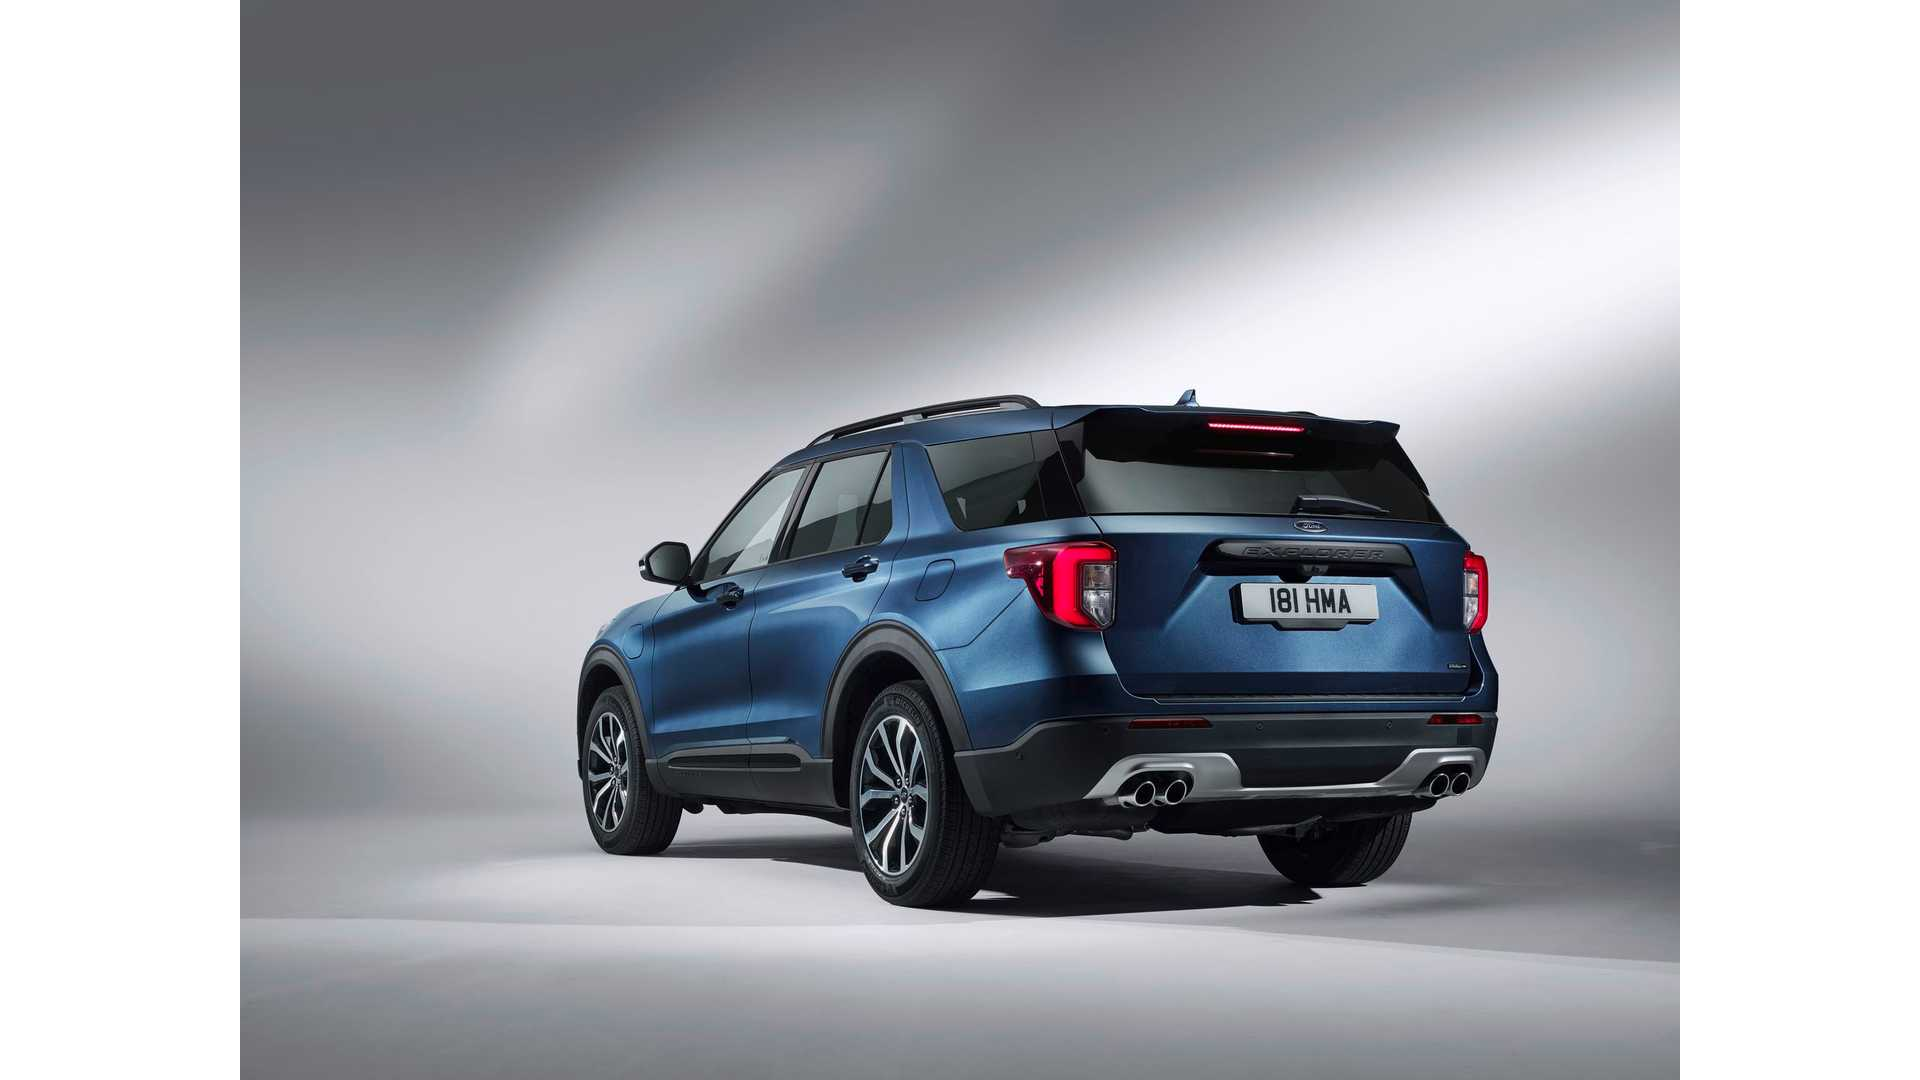 New Ford Explorer Plug-In Hybrid: Specs, Images, Videos